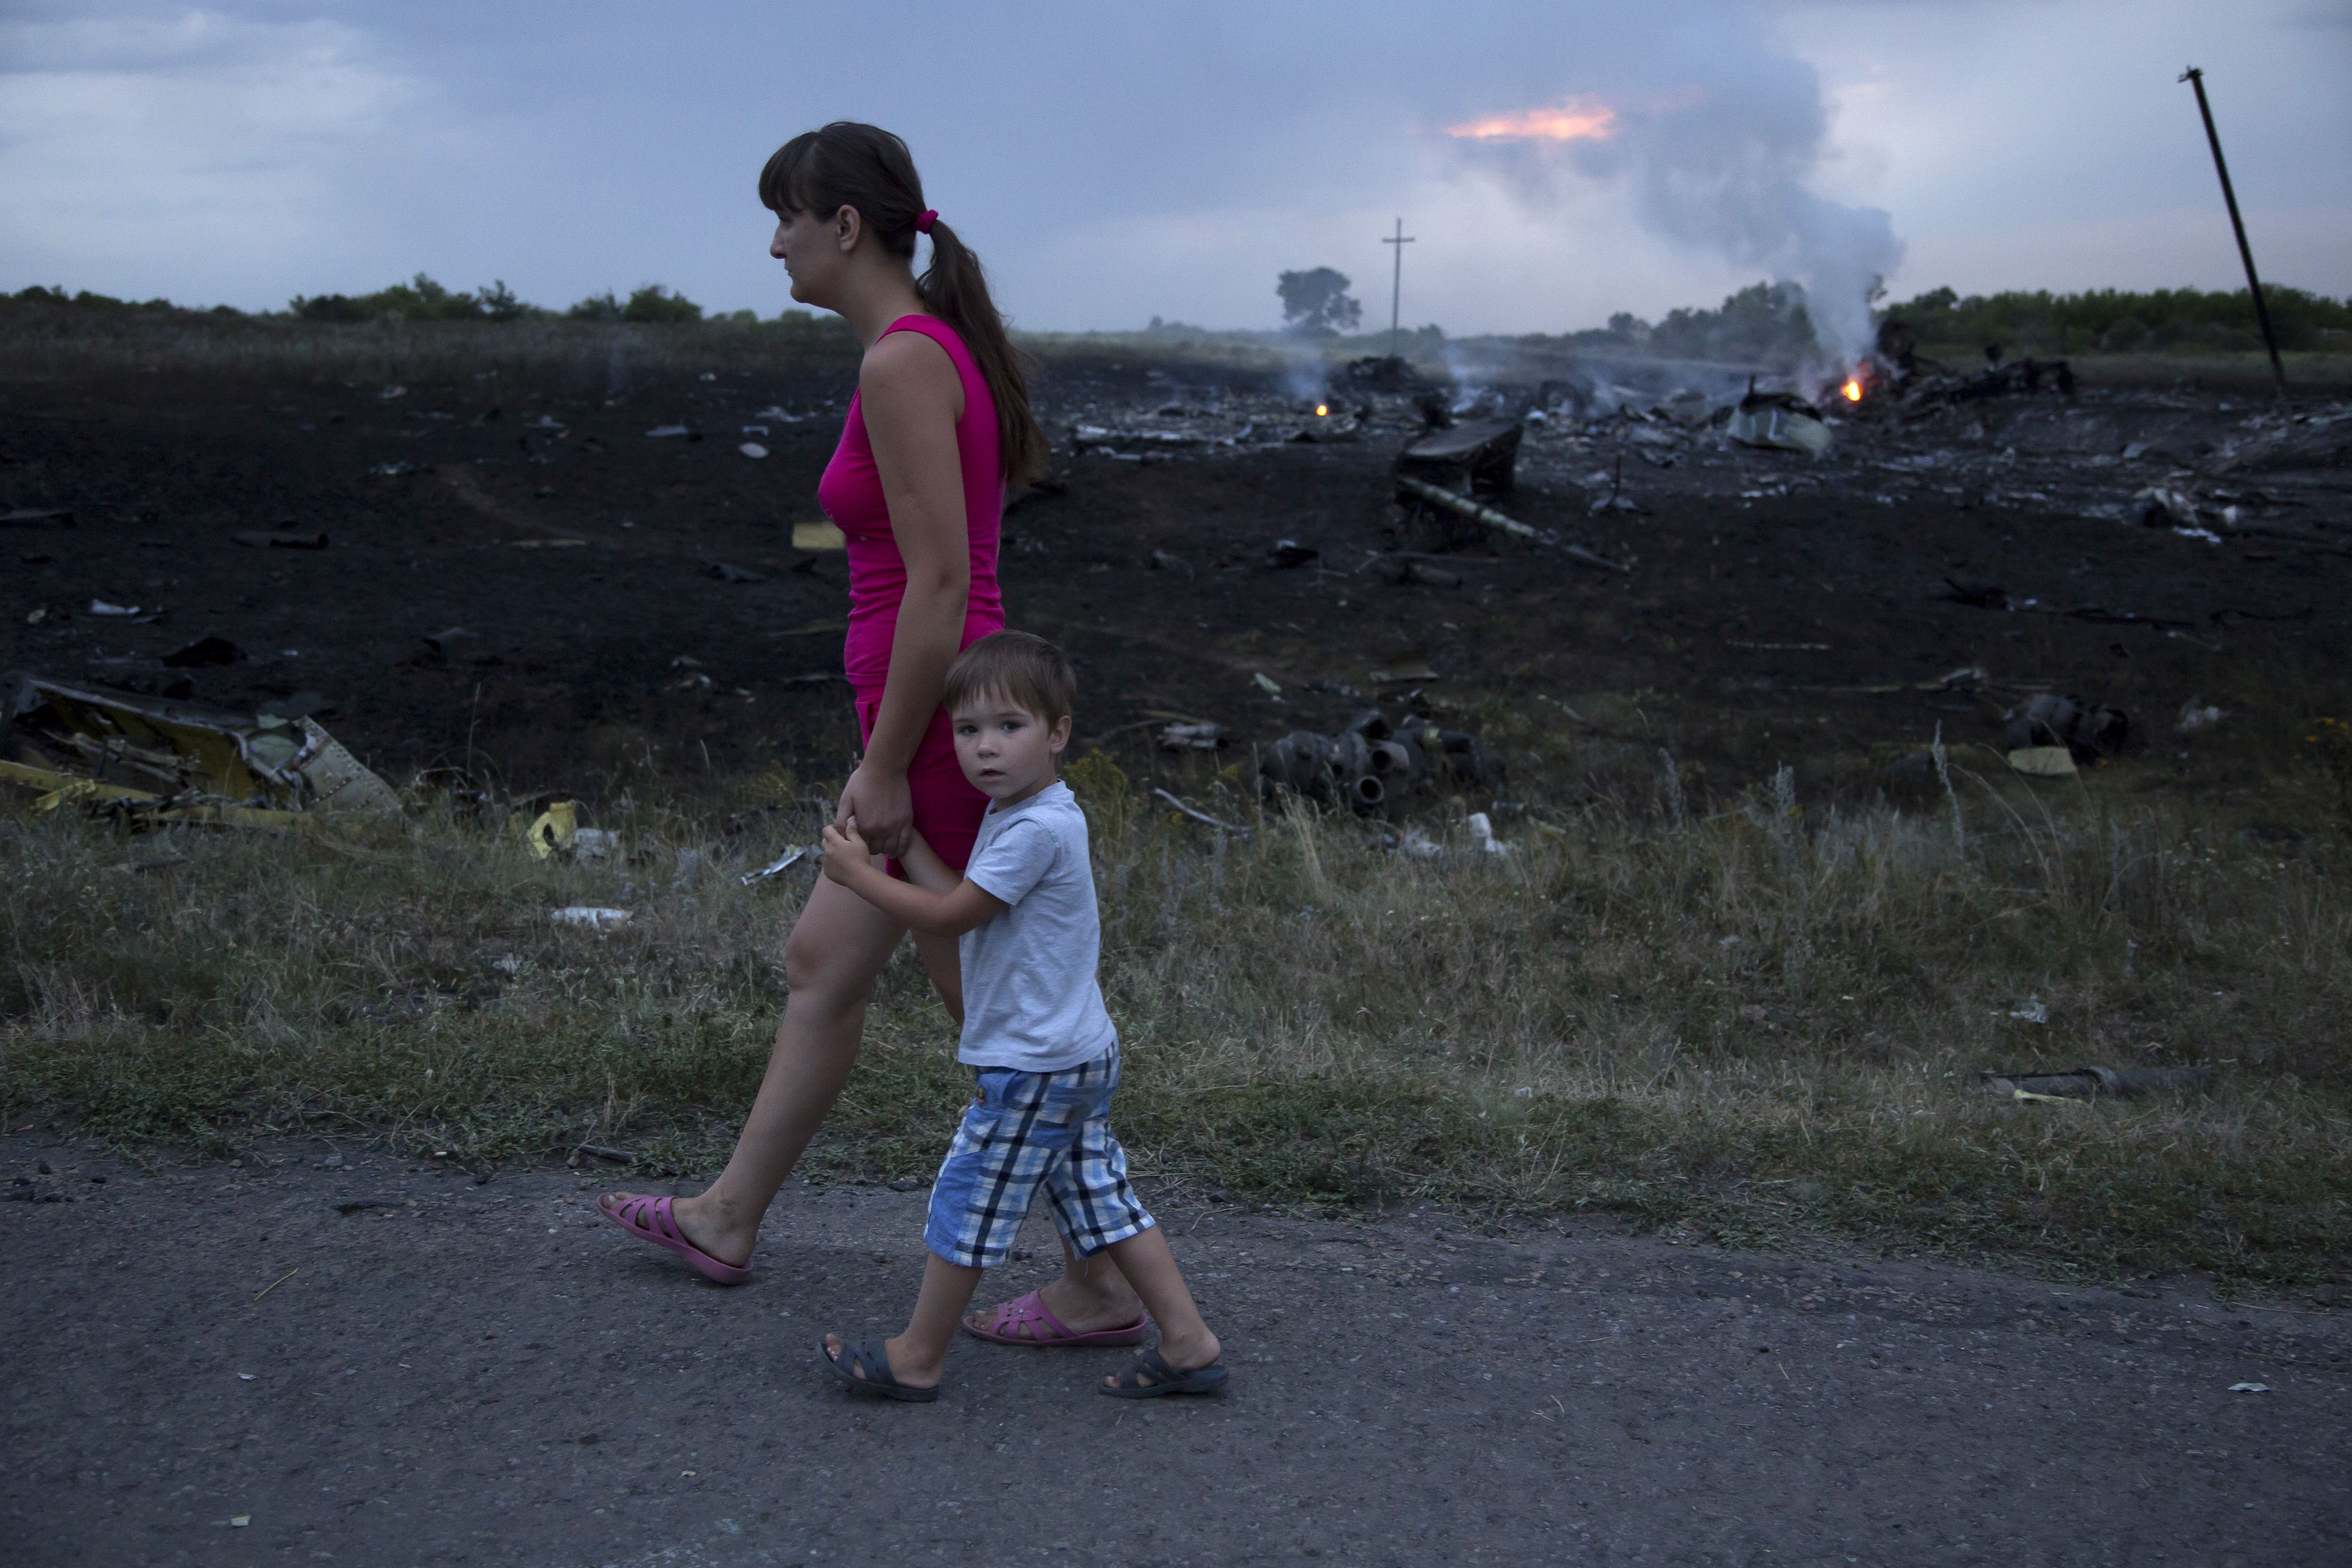 A woman and child walk past the crash site of a passenger plane near the village of Grabovo, Ukraine, July 17, 2014.